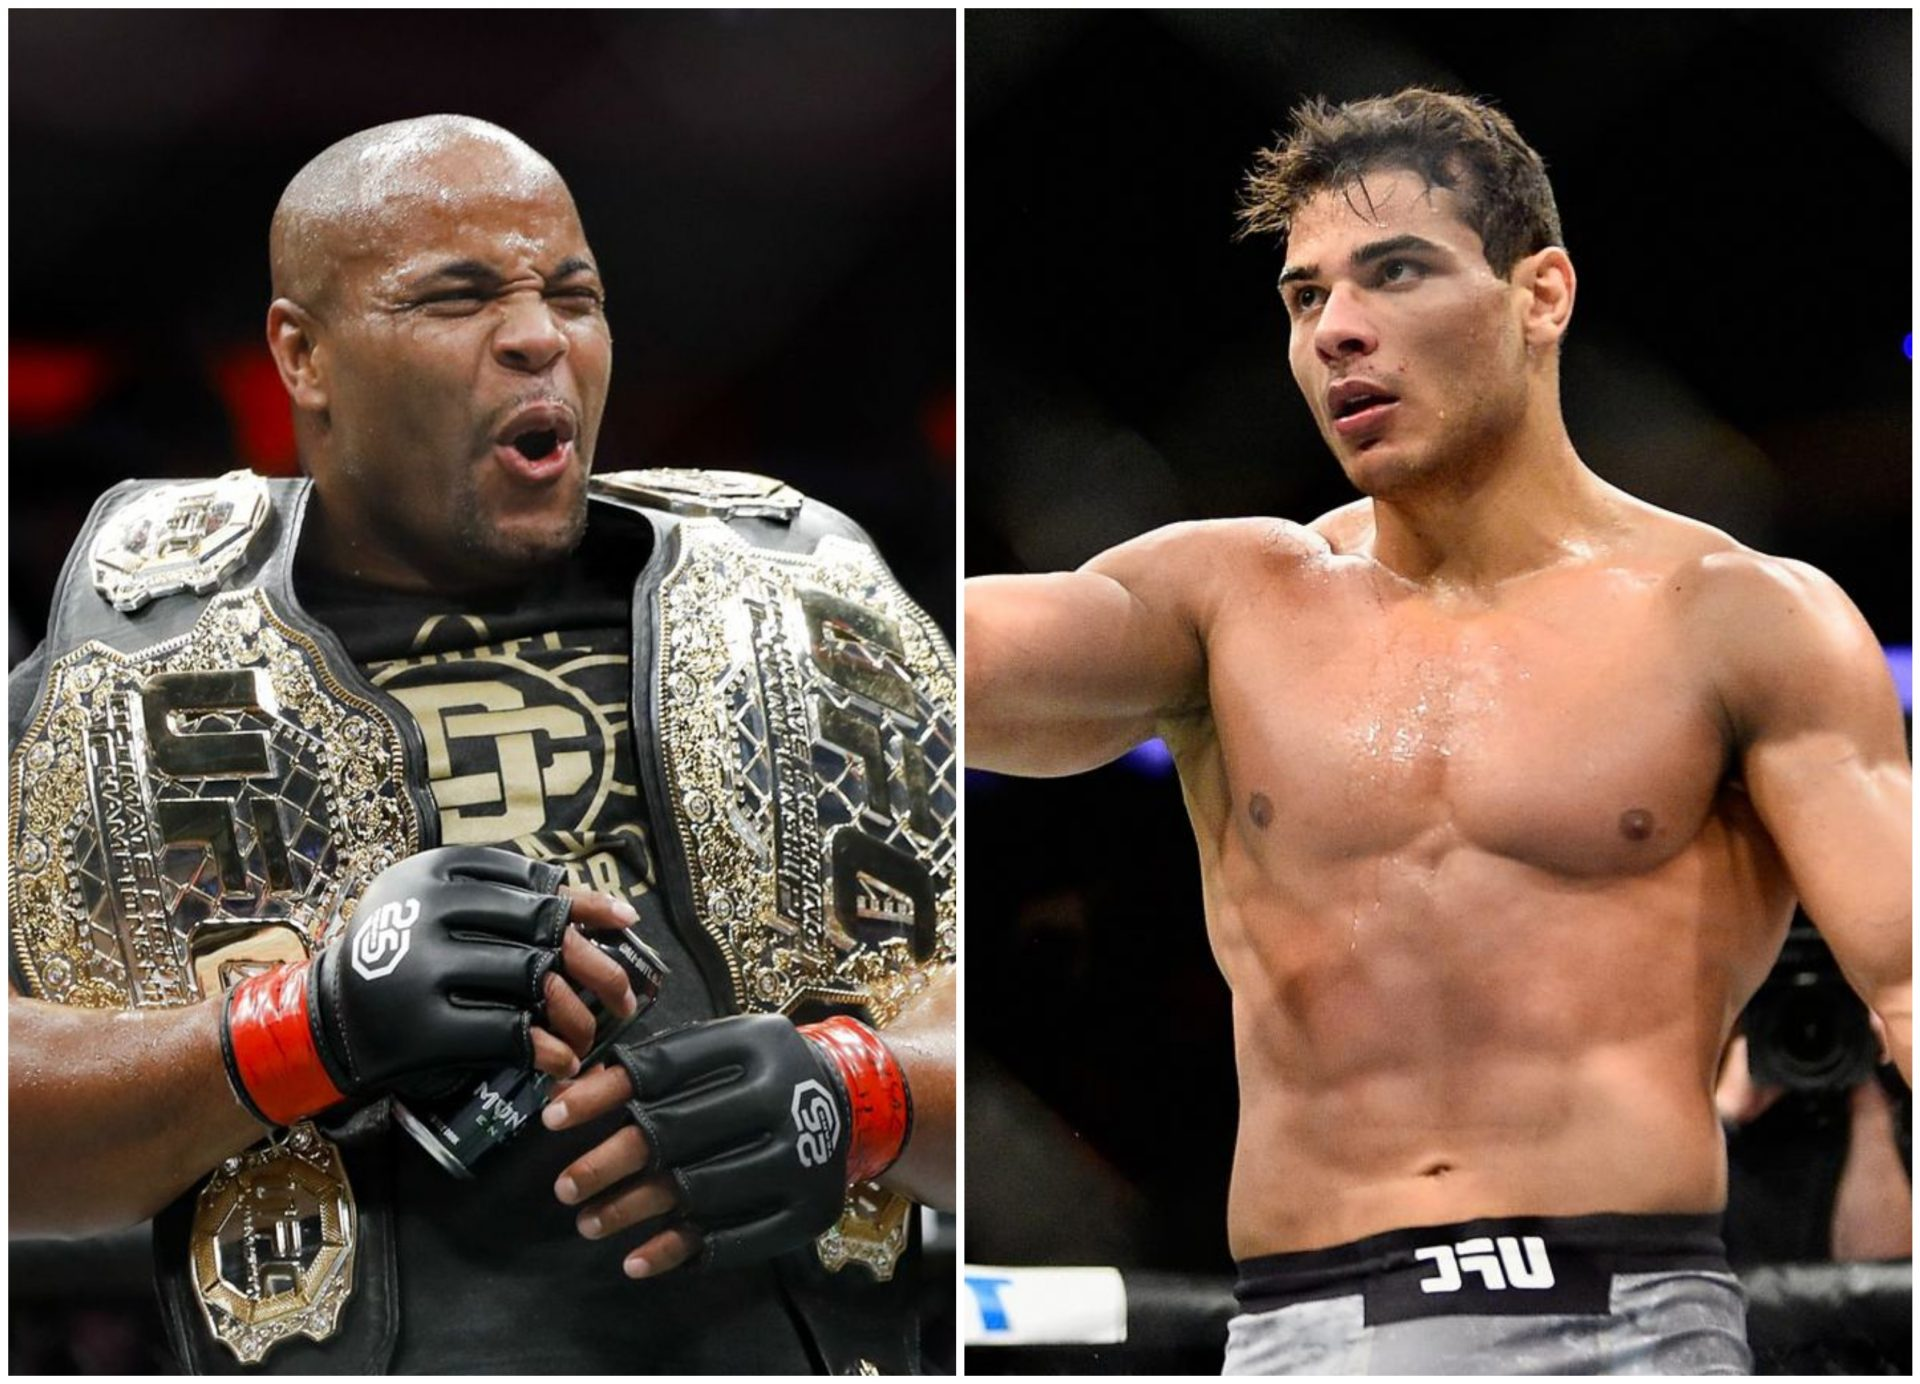 Daniel Cormier claims Paulo Costa 'breaks' sparring partners and gets told to 'shut the f**k up' by middleweight - Paulo Costa